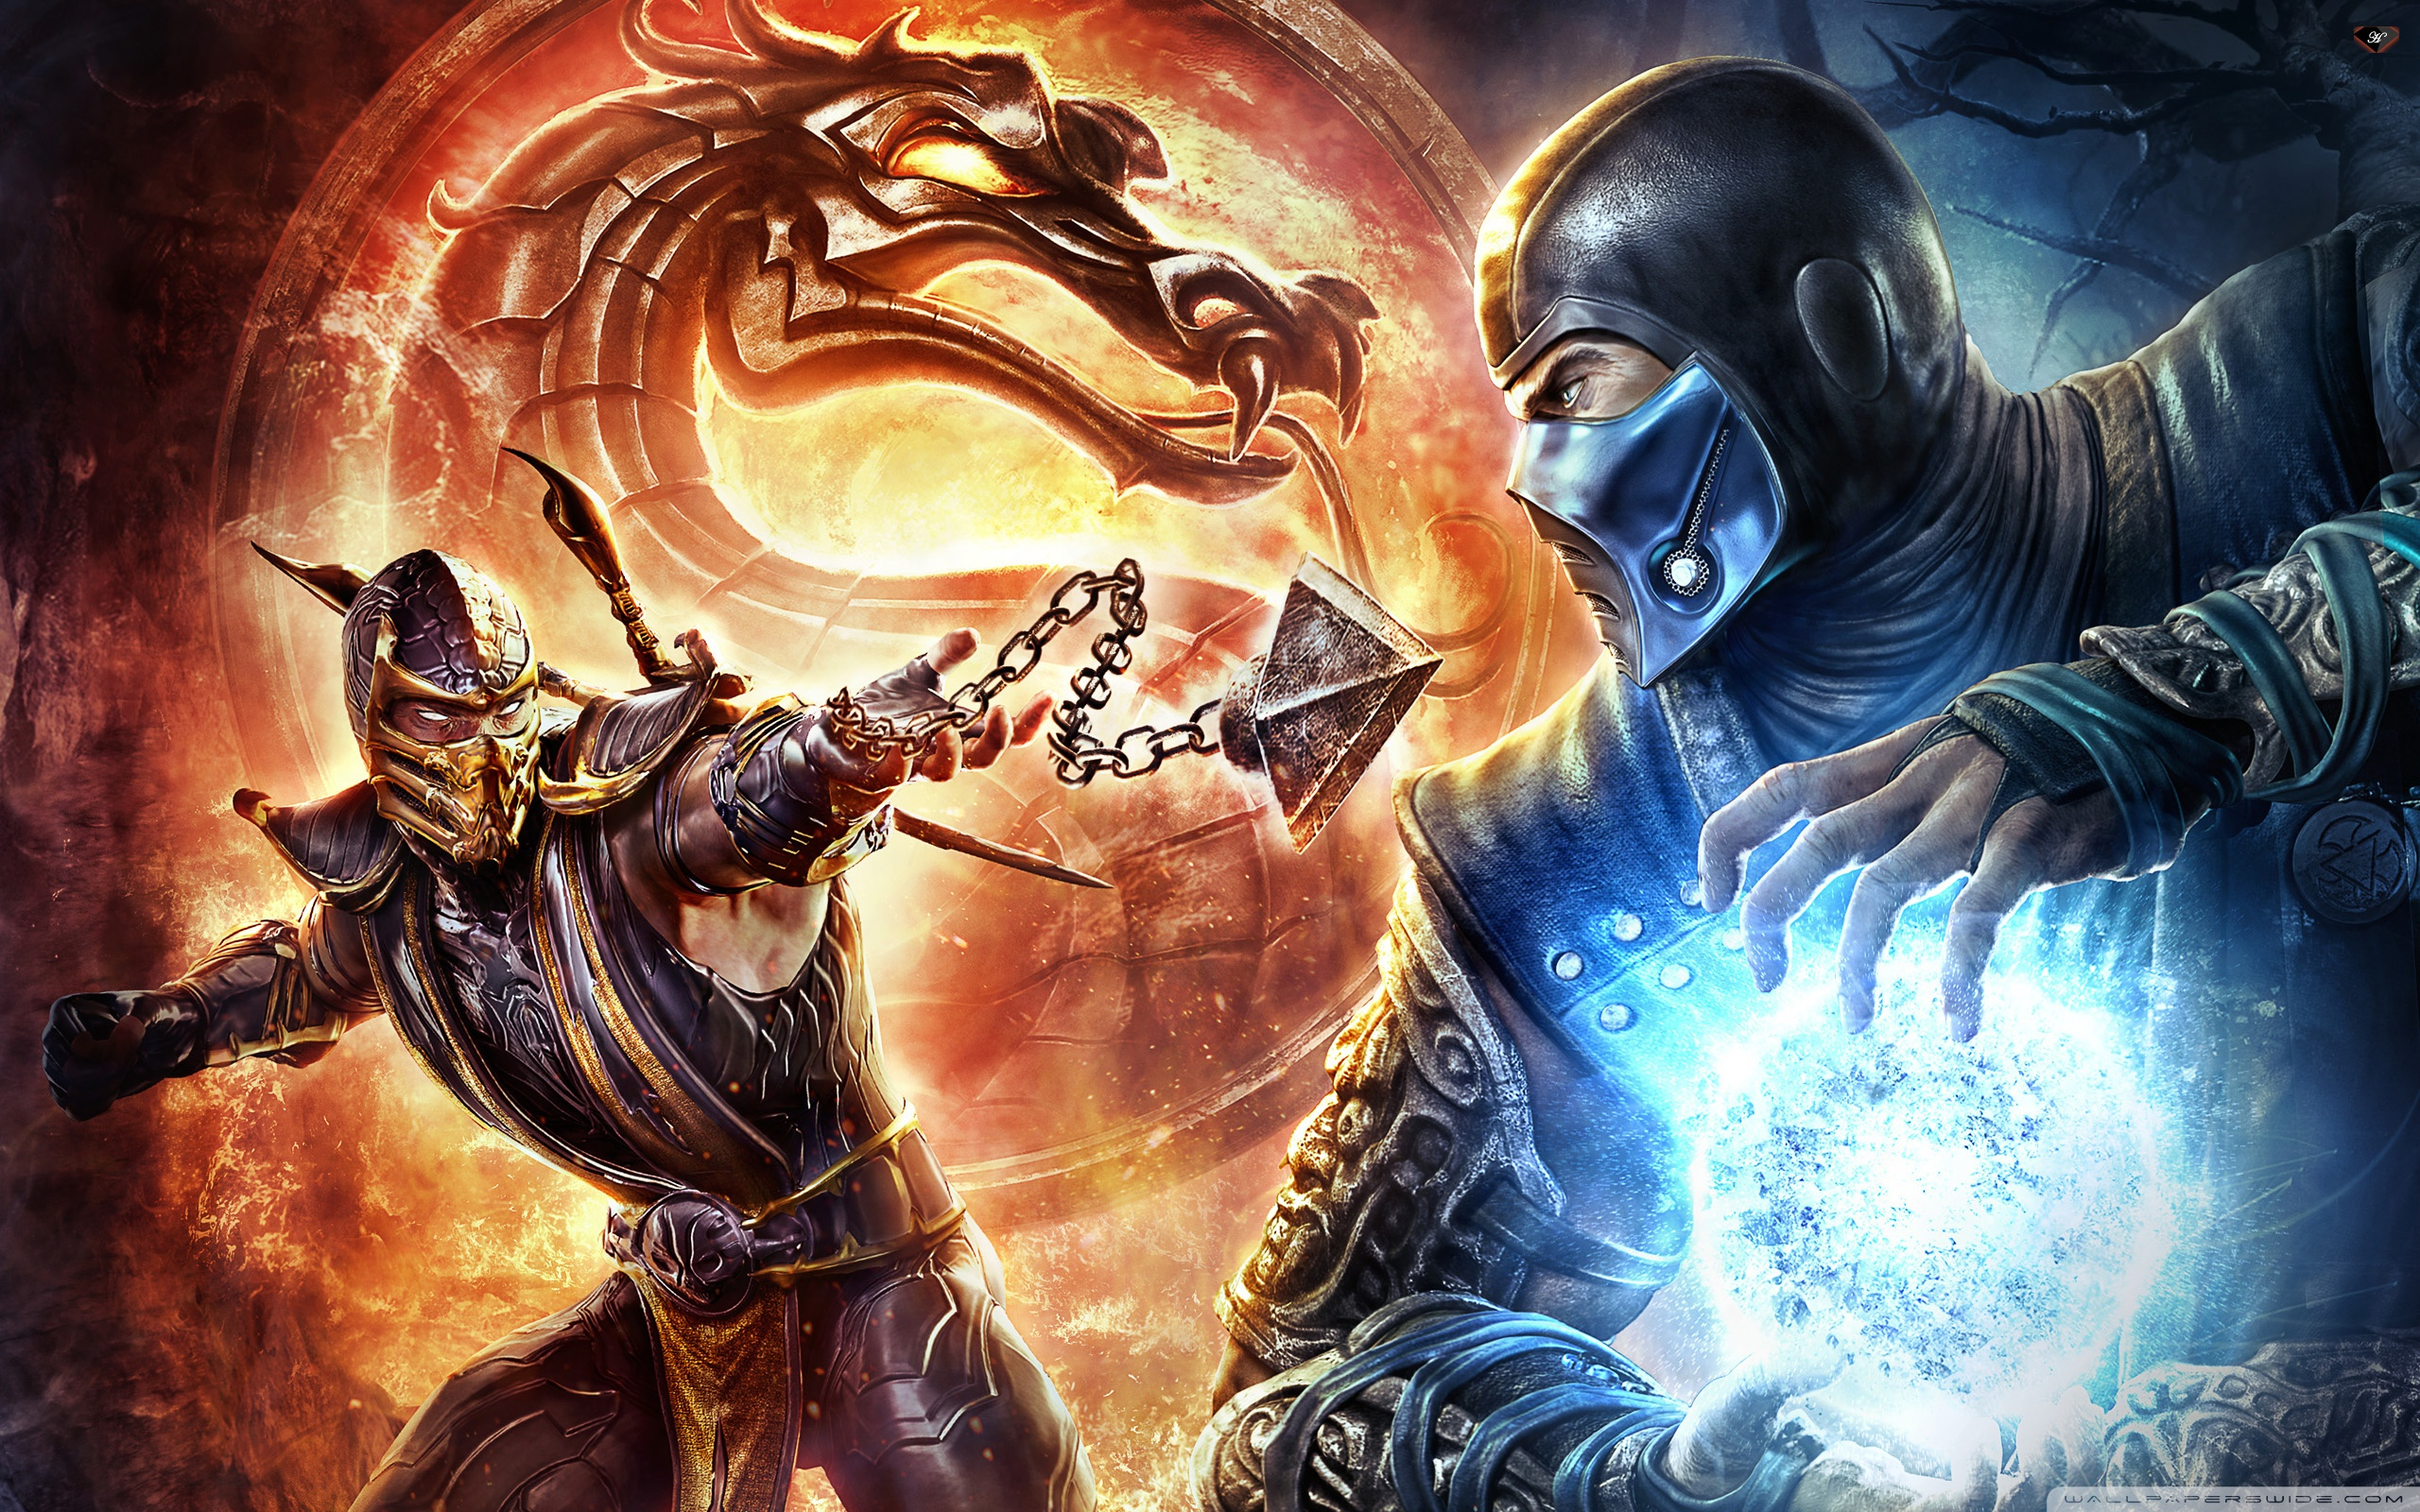 HD Mortal Kombat Wallpaper